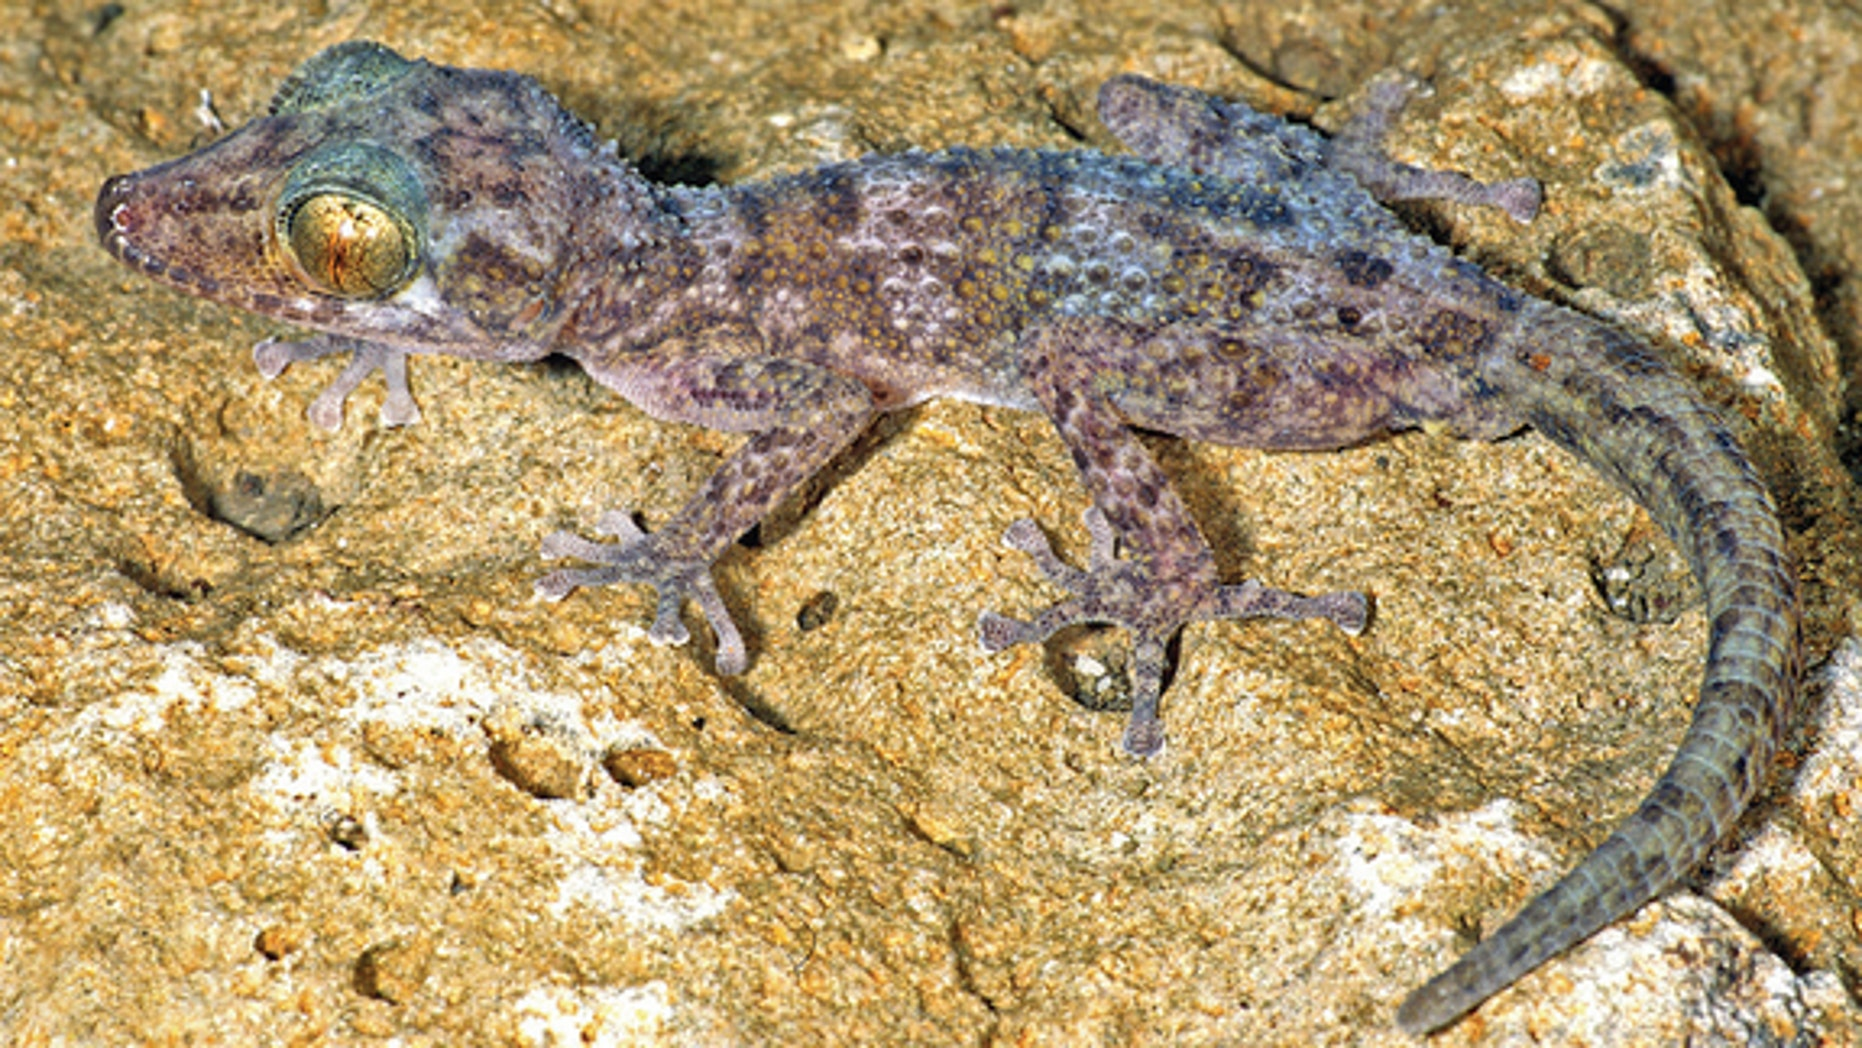 An adult male of the new nocturnal gecko species, <i>Paroedura hordiesi</i>.